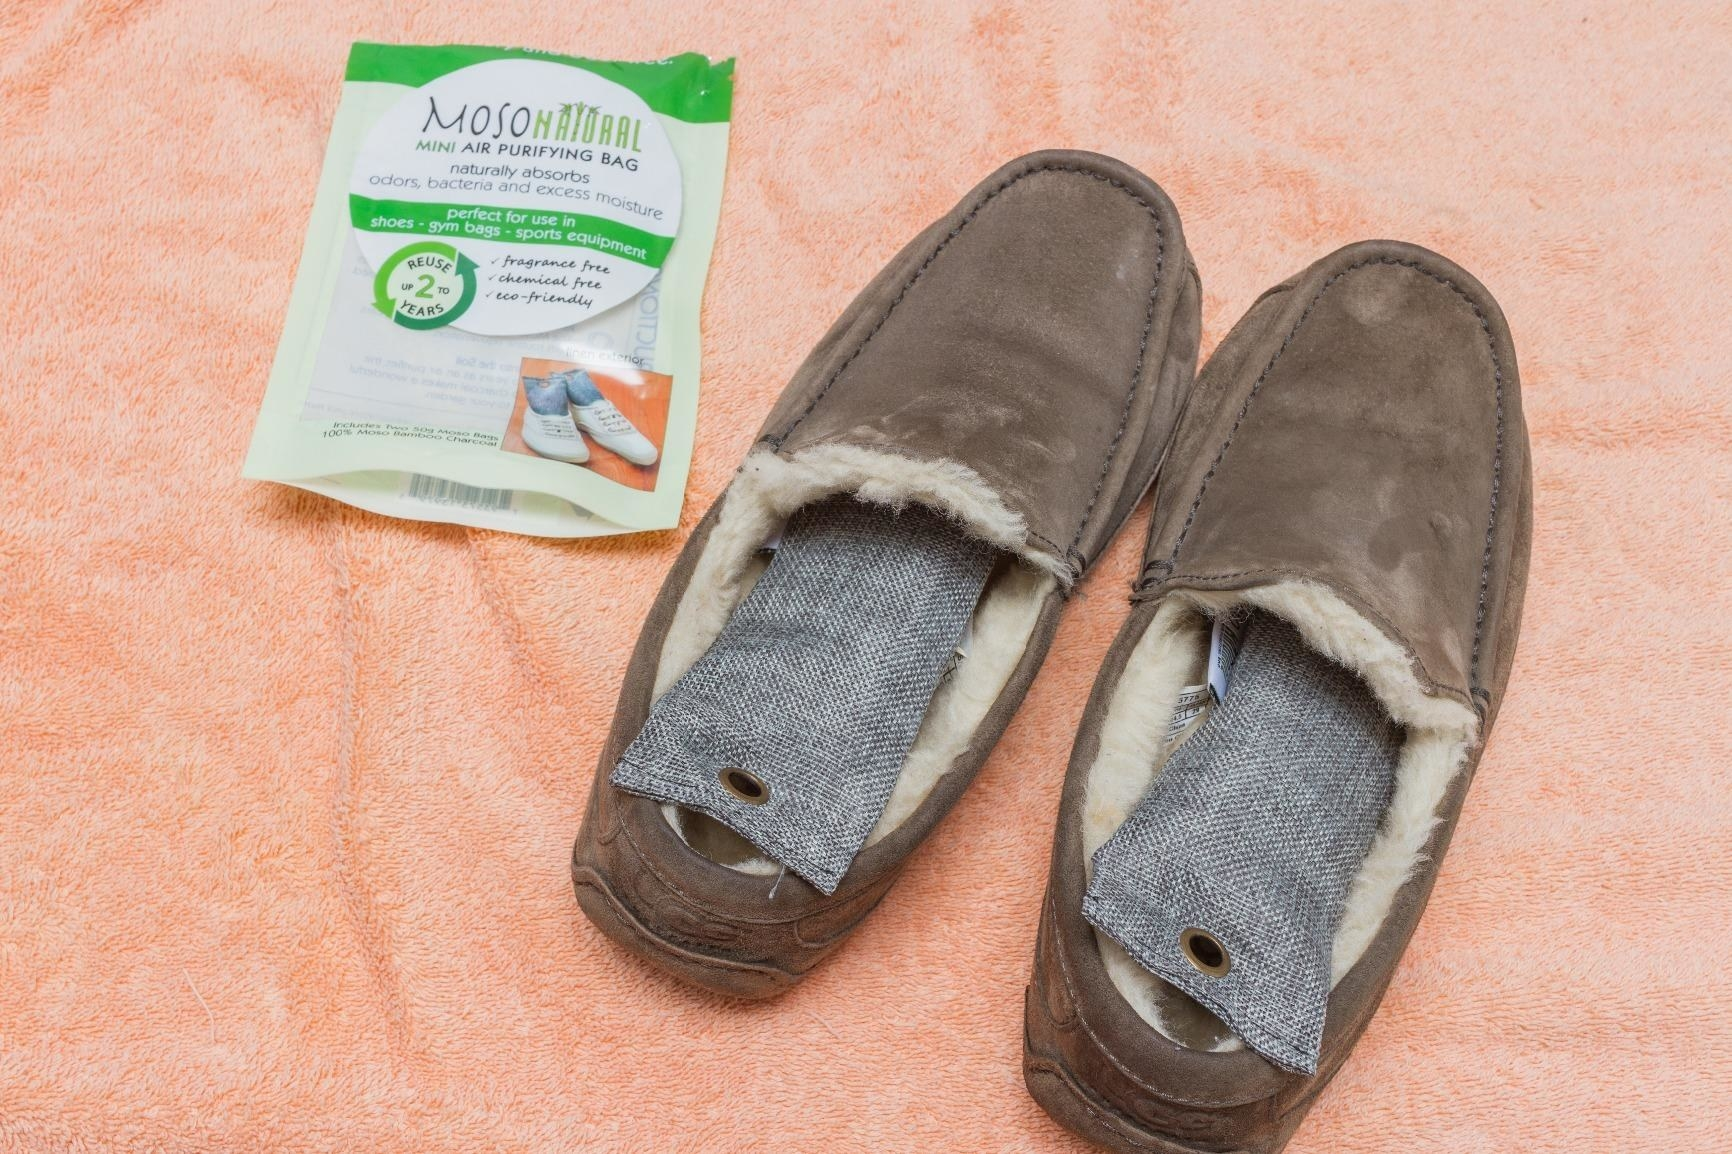 A reviewer's narrow rectangular deodorizers inside a pair of fur-lined shoes